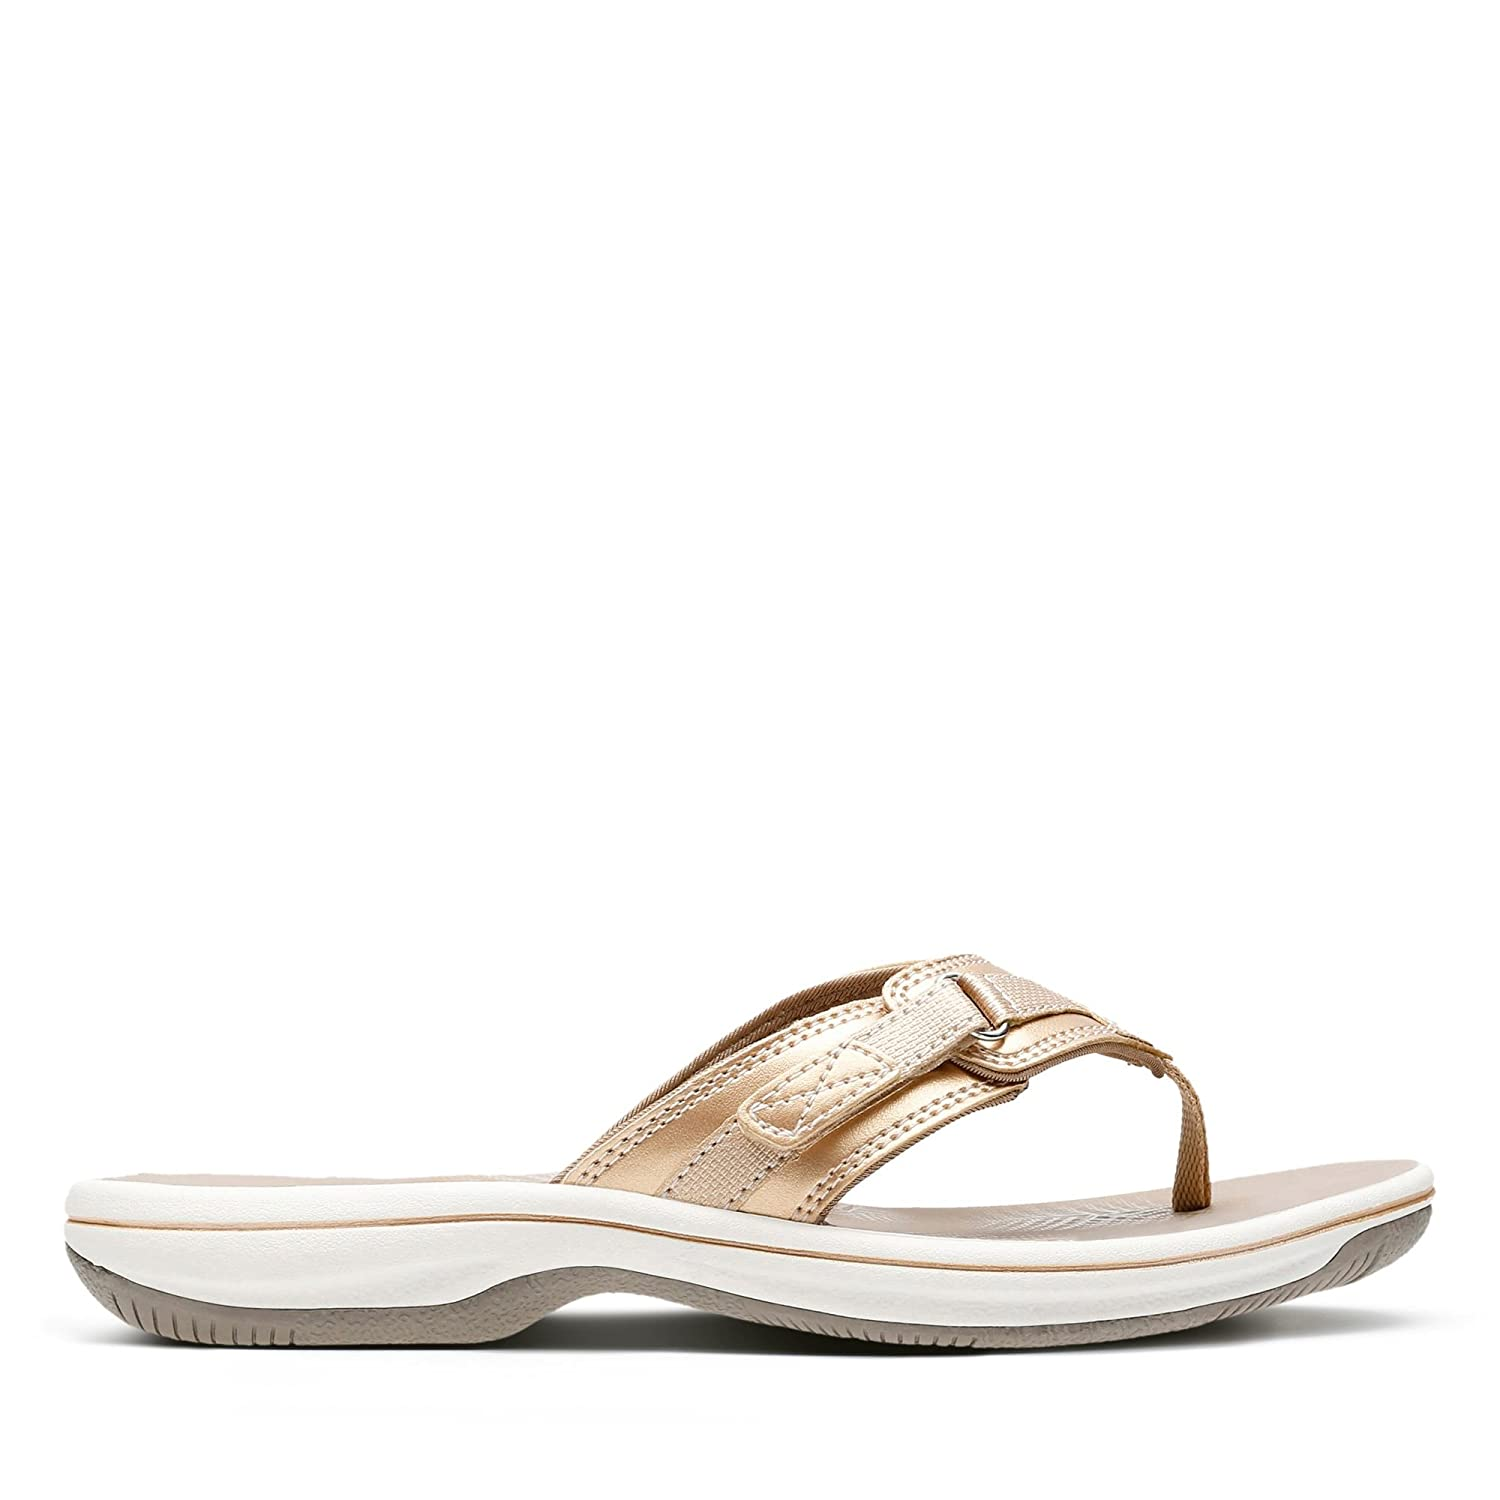 unique style best selection of new & pre-owned designer Clarks Brinkley Sea Synthetic Sandals in Gold Standard Fit ...